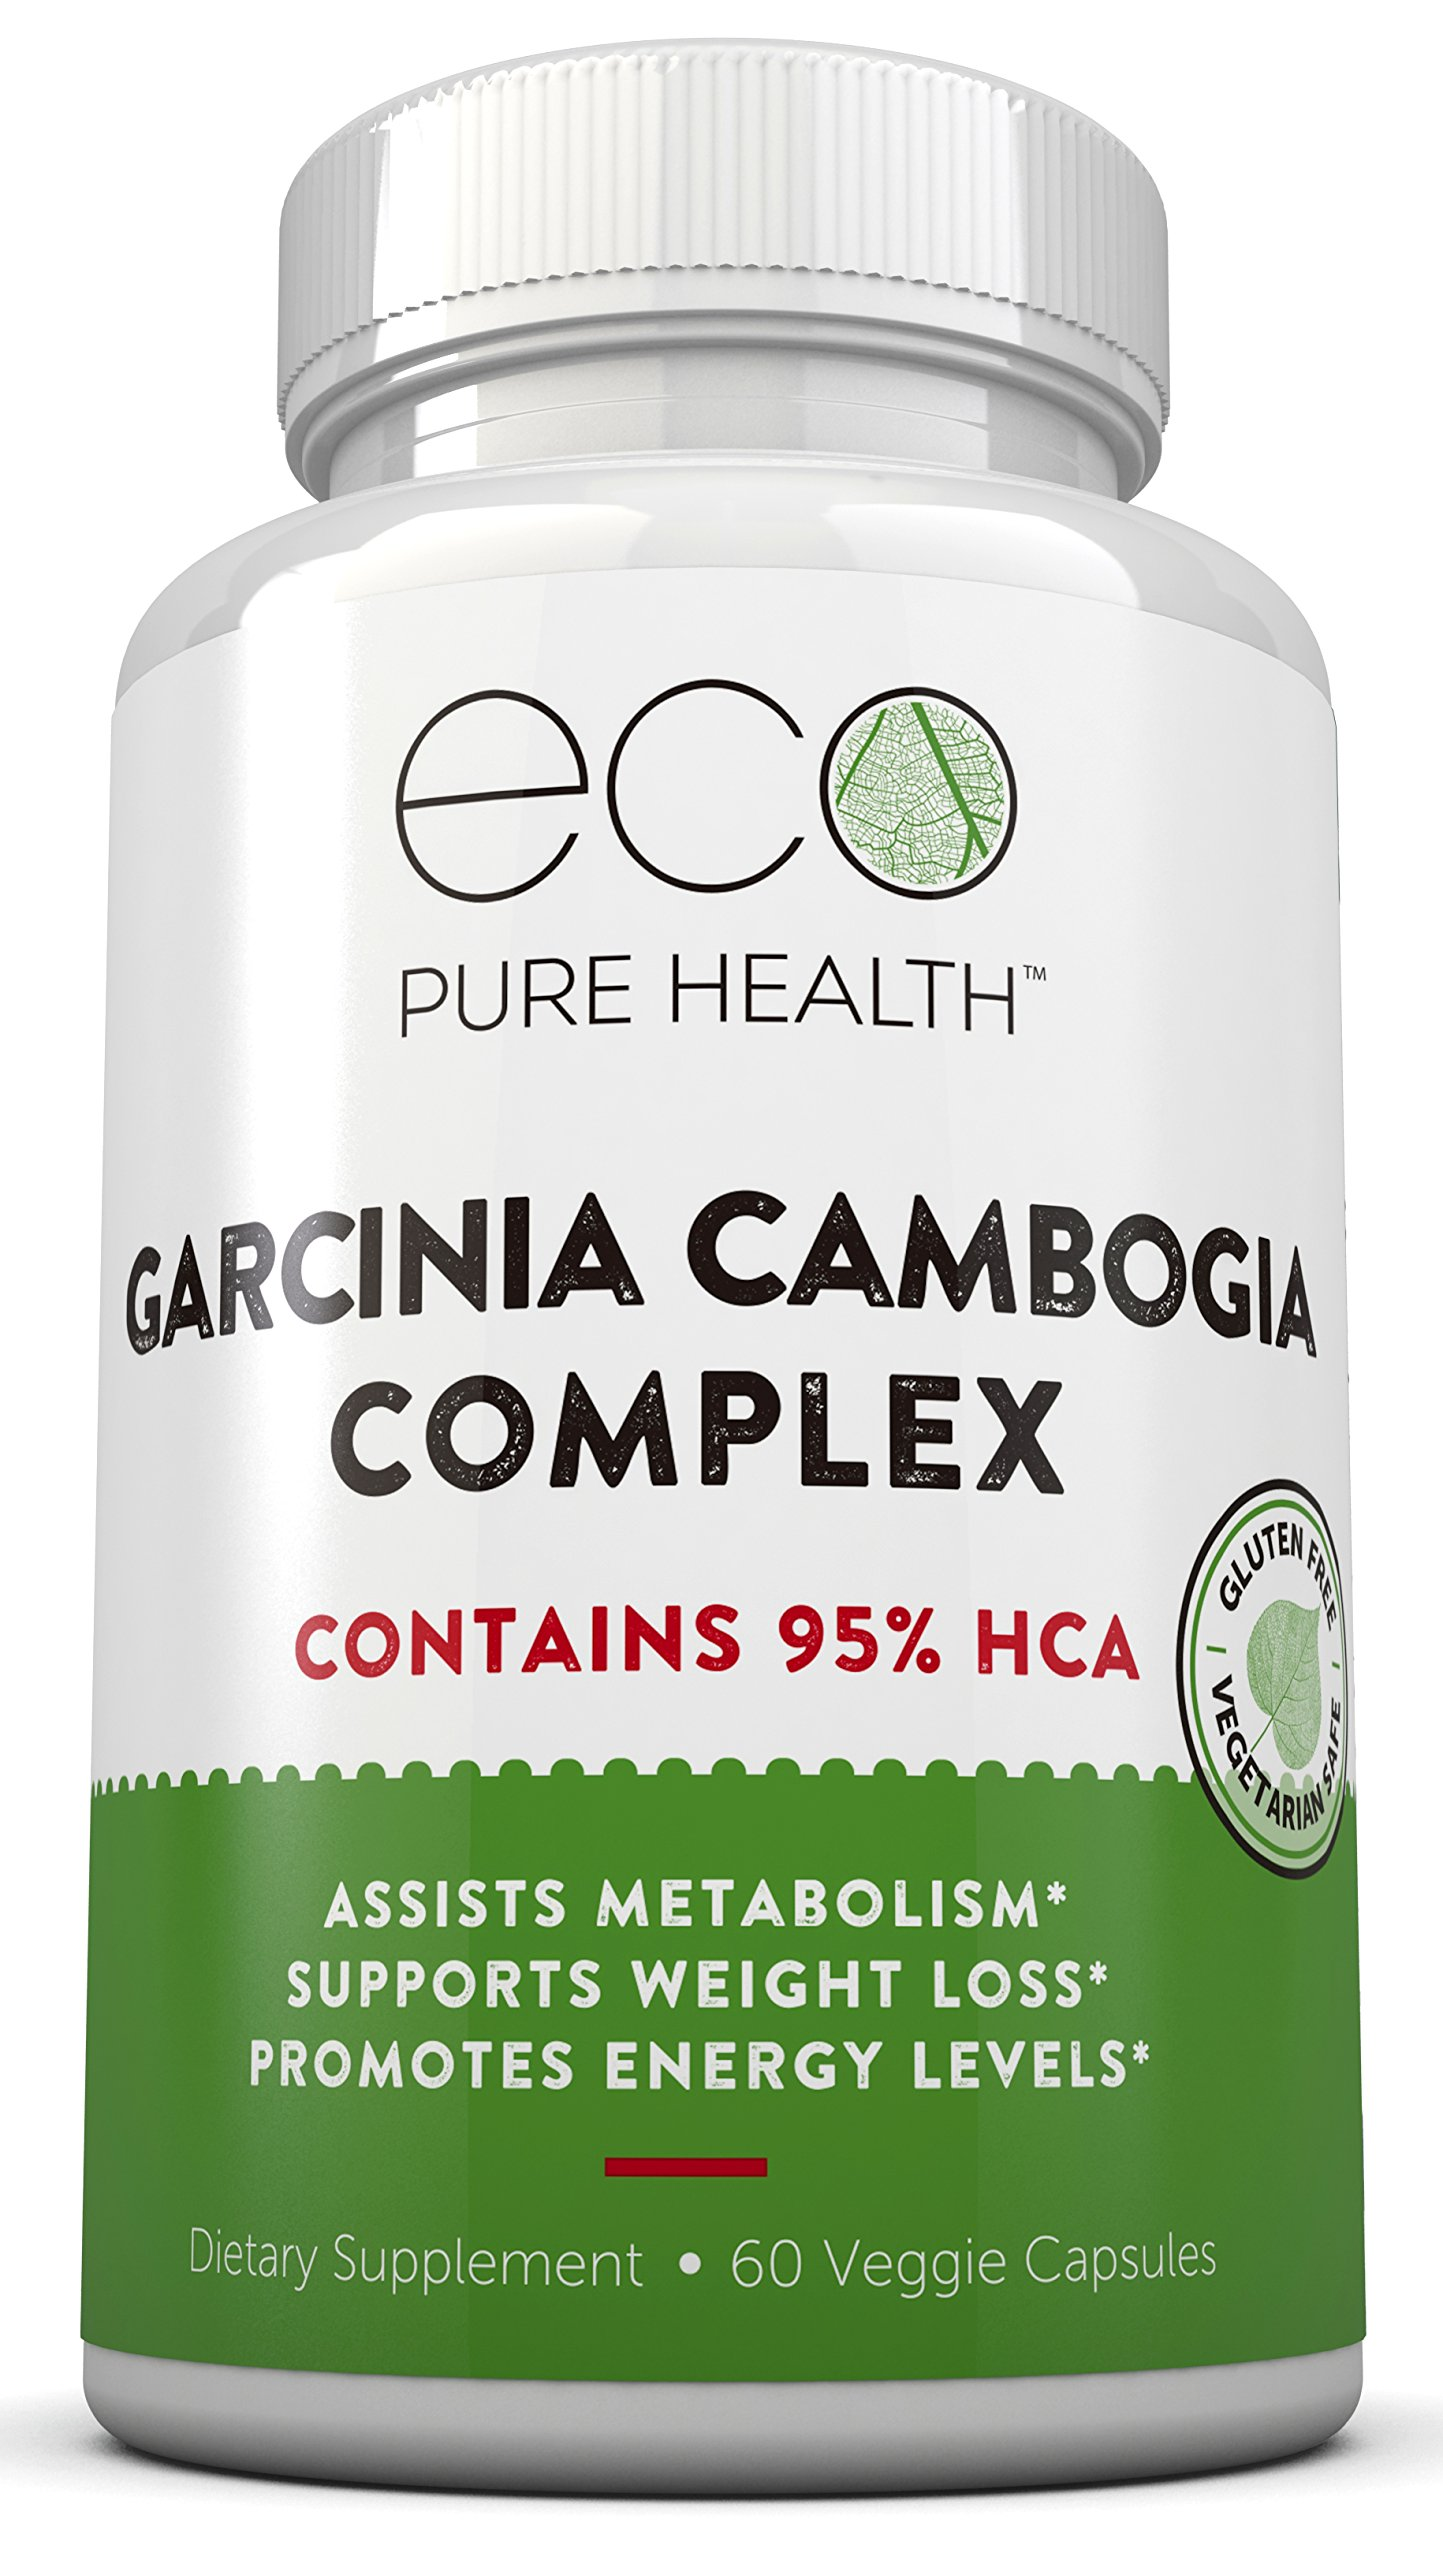 Garcinia Cambogia with 95% HCA - Pure Garcinia Cambogia Extract with HCA, Triple Strength, All Natural Appetite Suppressant, Weight Loss Supplement By Eco Pure Health